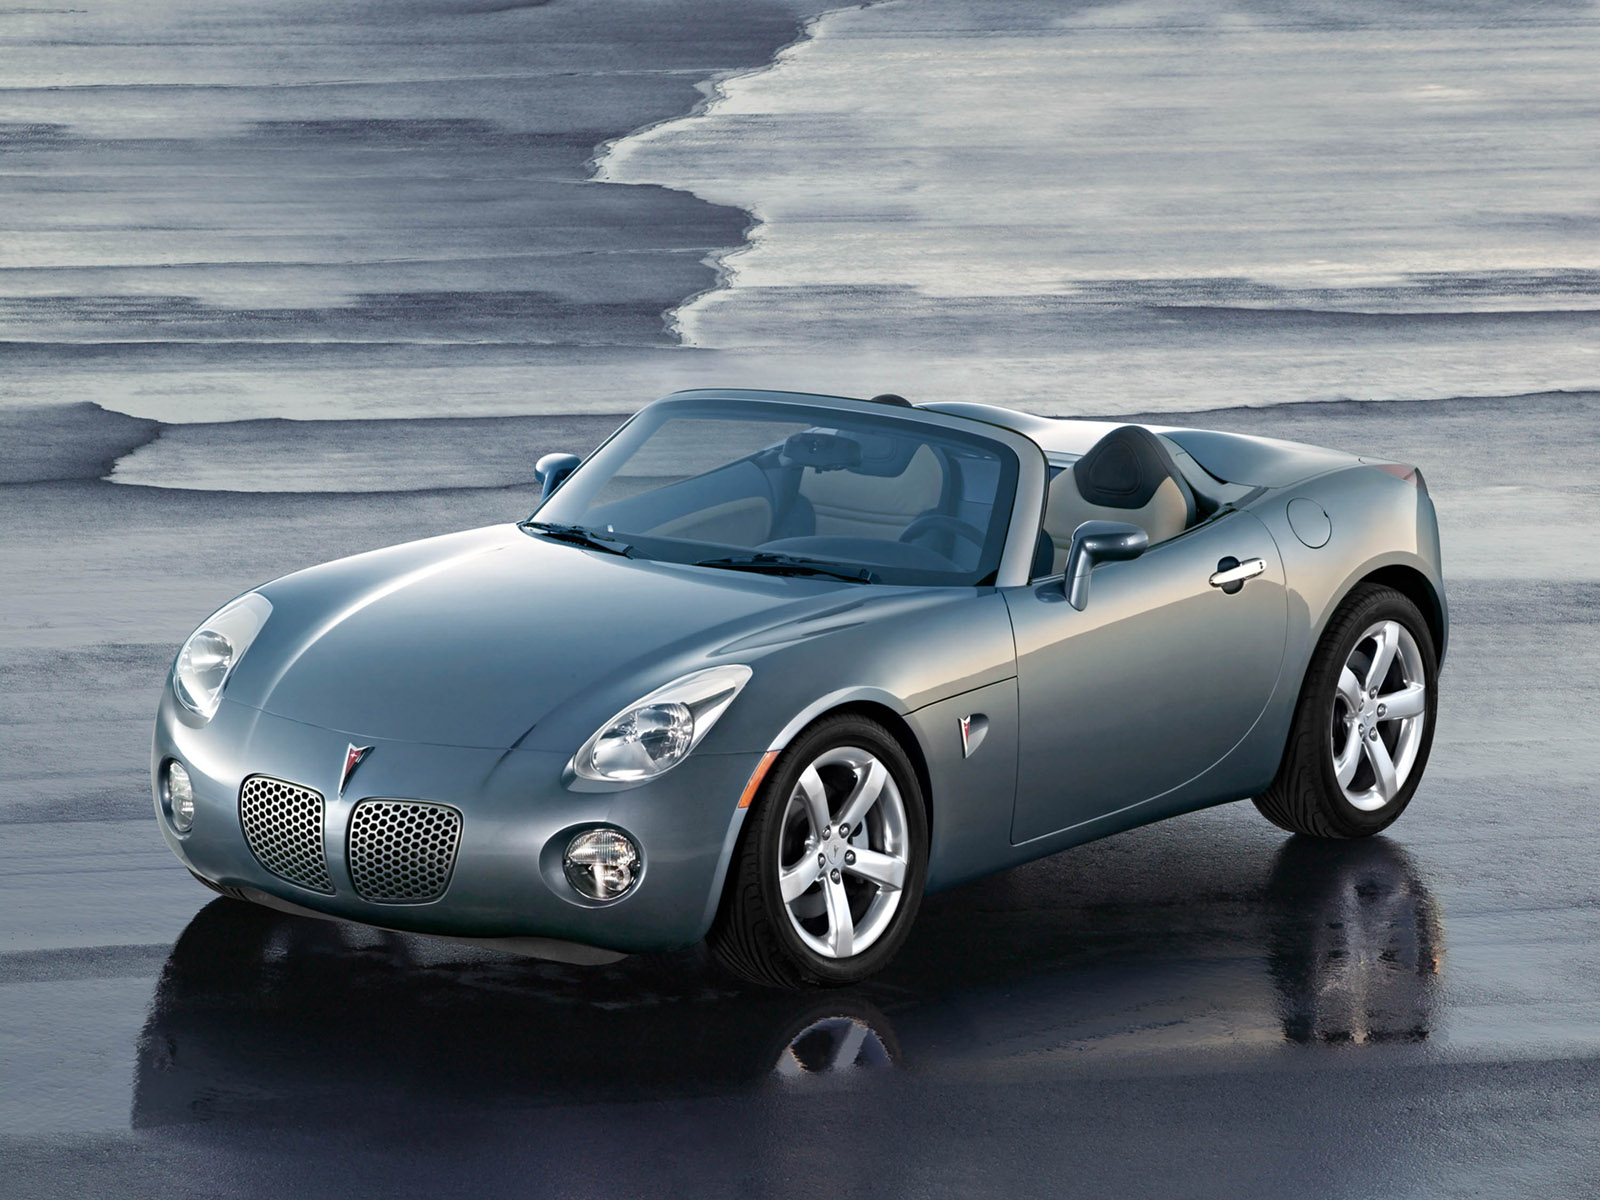 2006 Pontiac Solstice Roadster - Wet - 1600x1200 Wallpaper